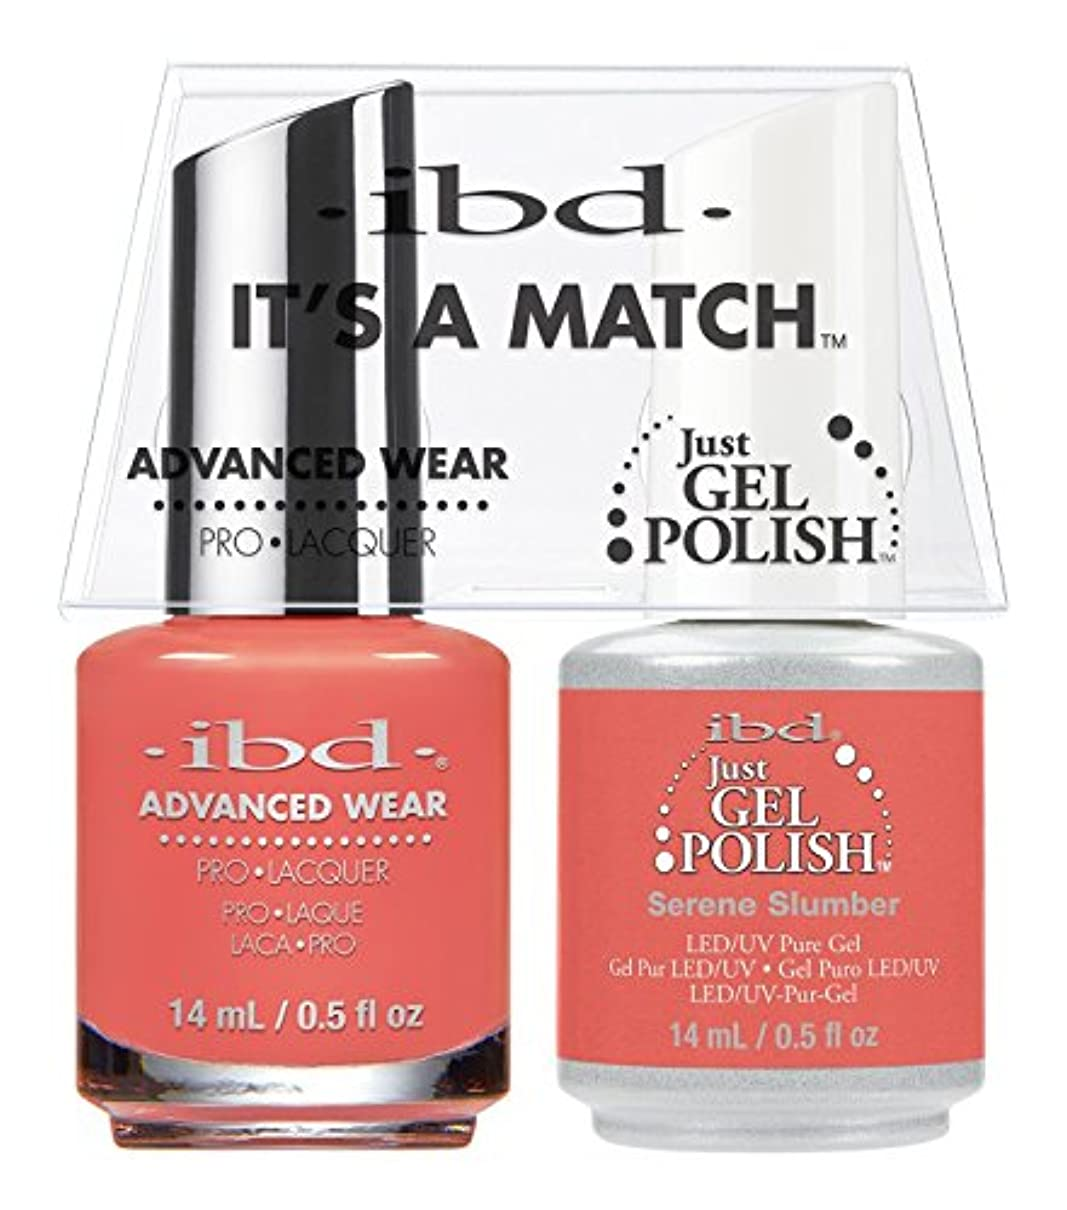 付き添い人フック悪性のibd - It's A Match -Duo Pack- Serene Slumber - 14 mL / 0.5 oz Each